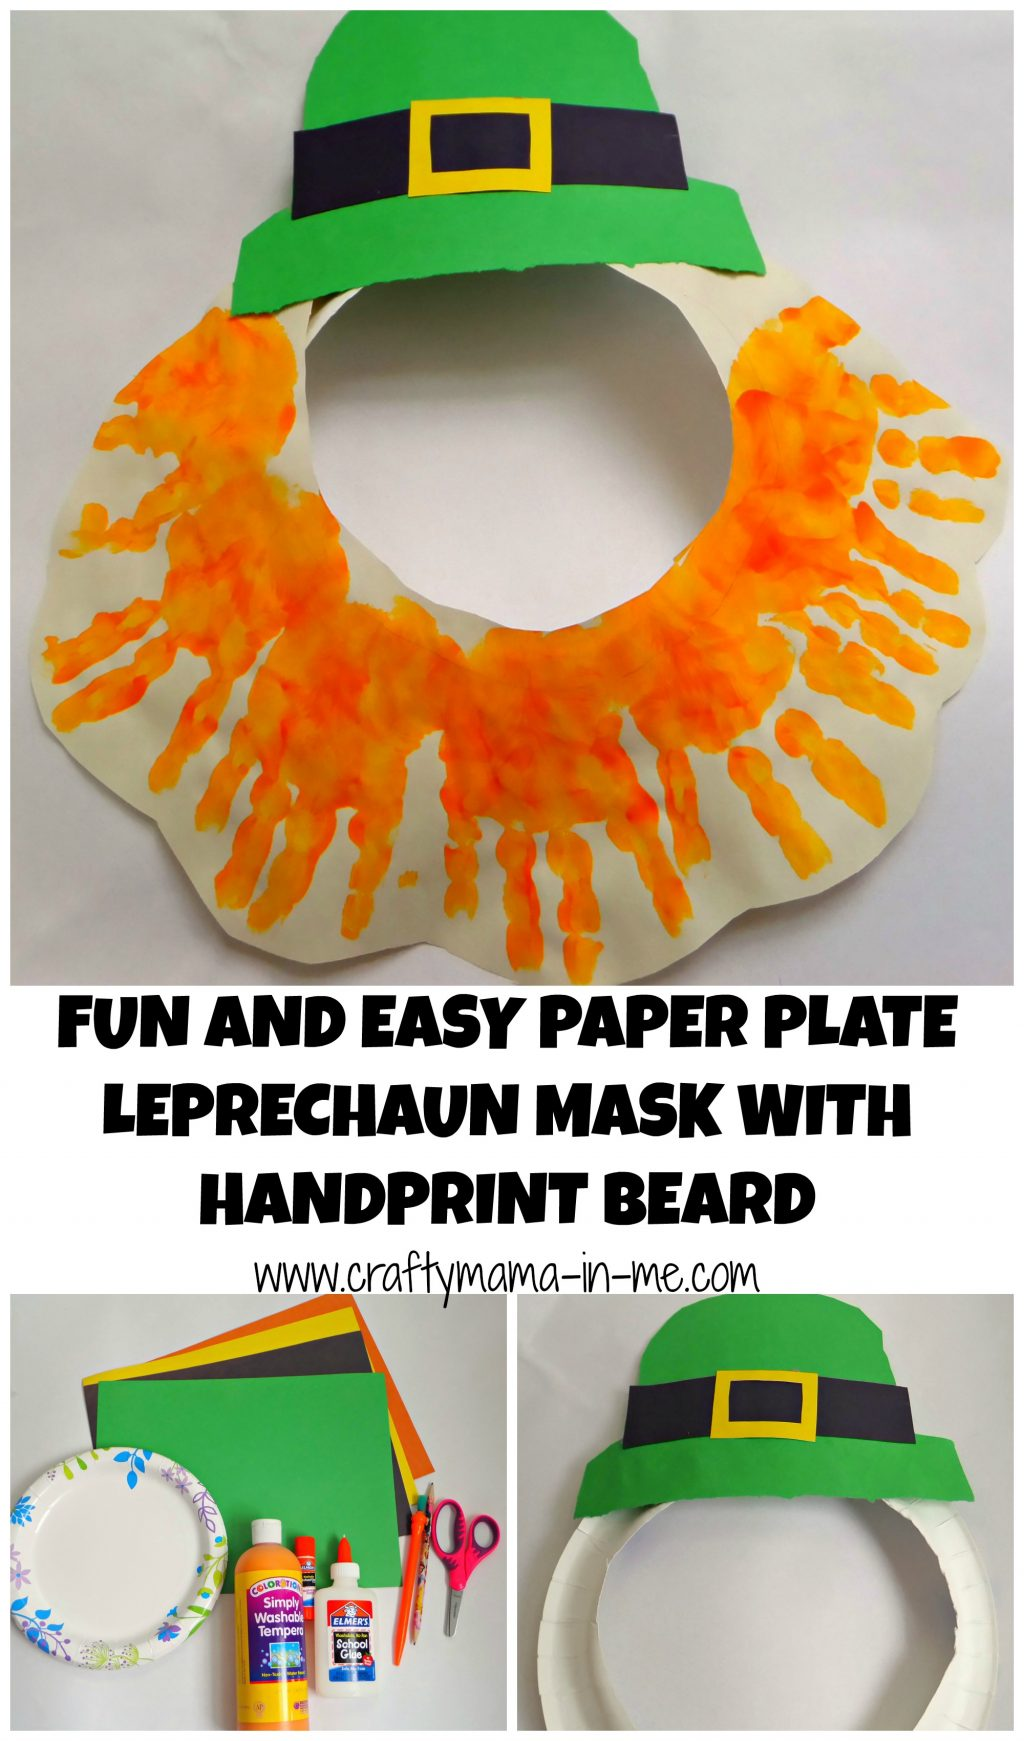 Fun And Easy Paper Plate Leprechaun Mask With Handprint